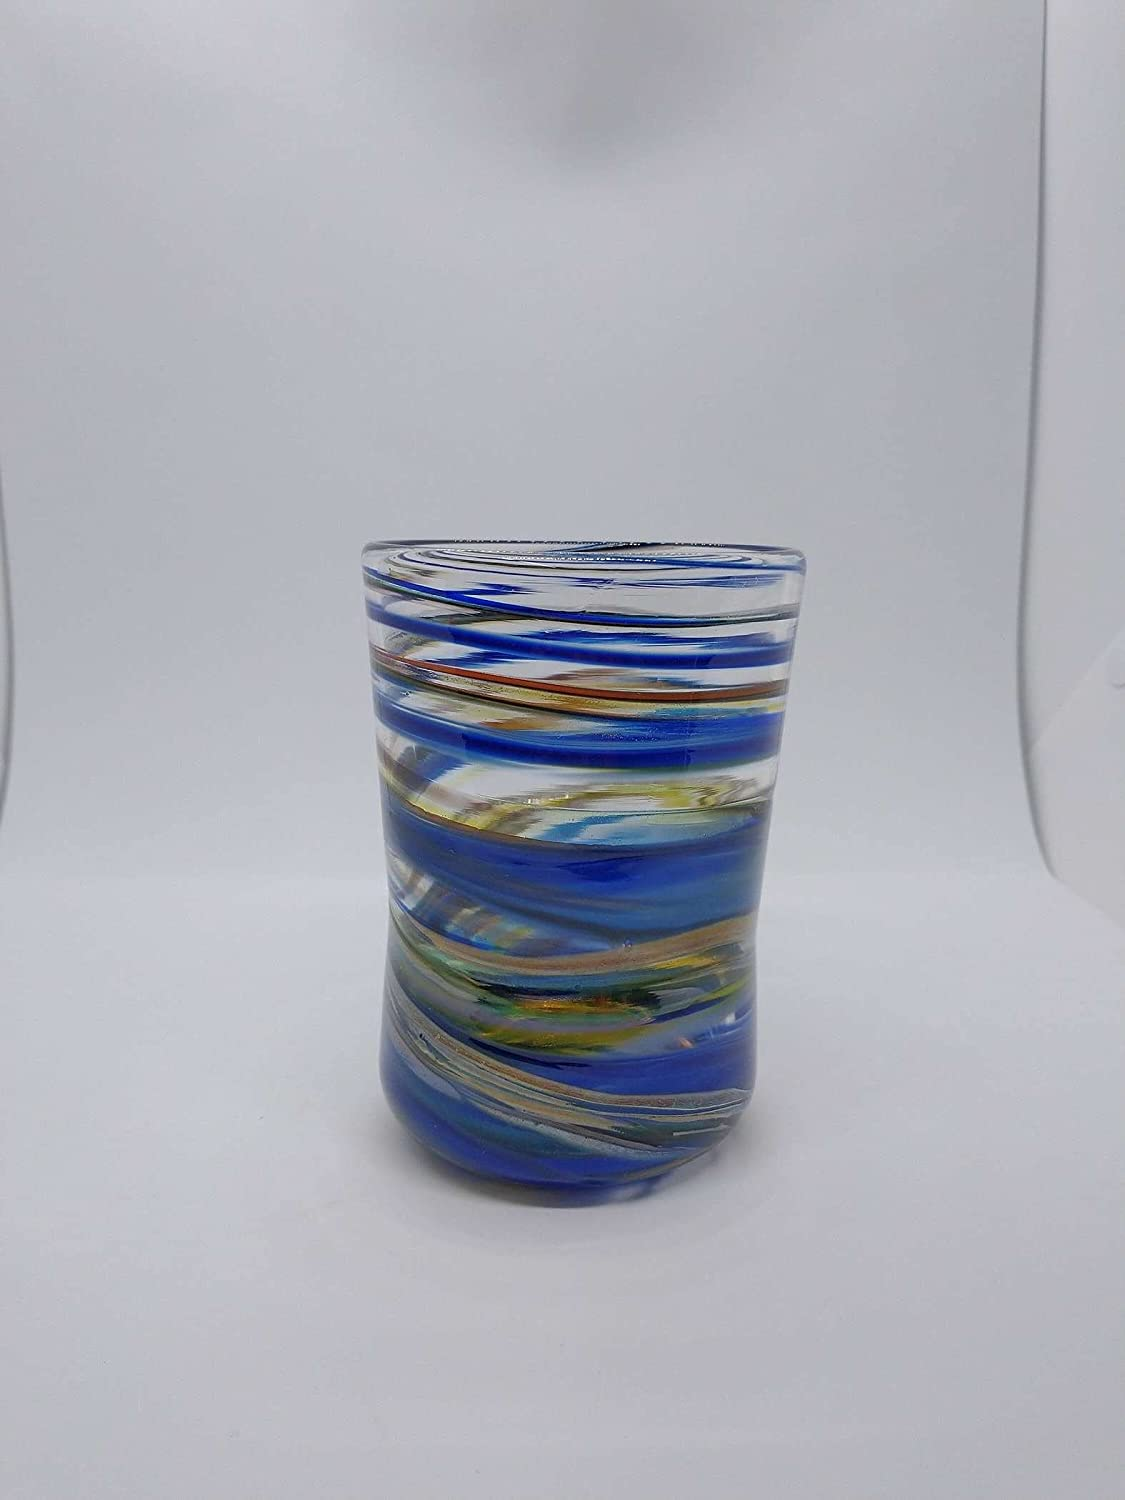 SINGLE swirl Cup glass Hand Blown Glass Water Glasses Ranking TOP12 G Drinking Max 45% OFF